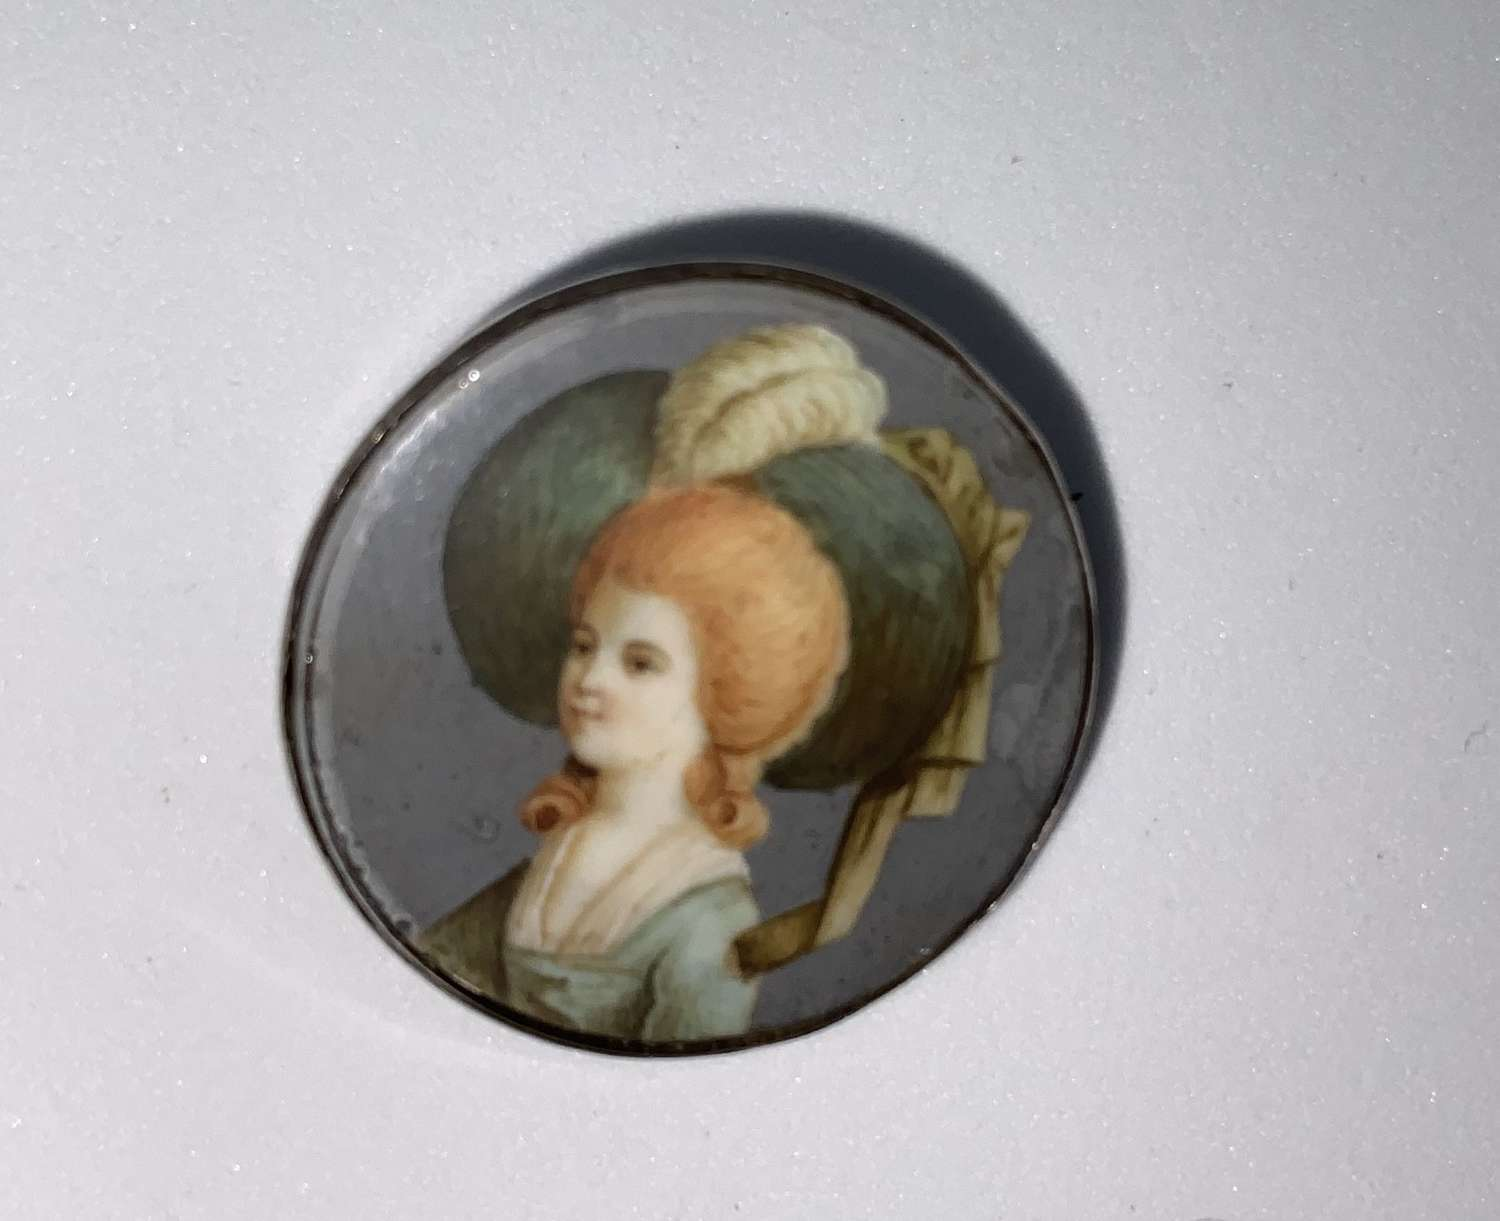 Portrait miniature brooch